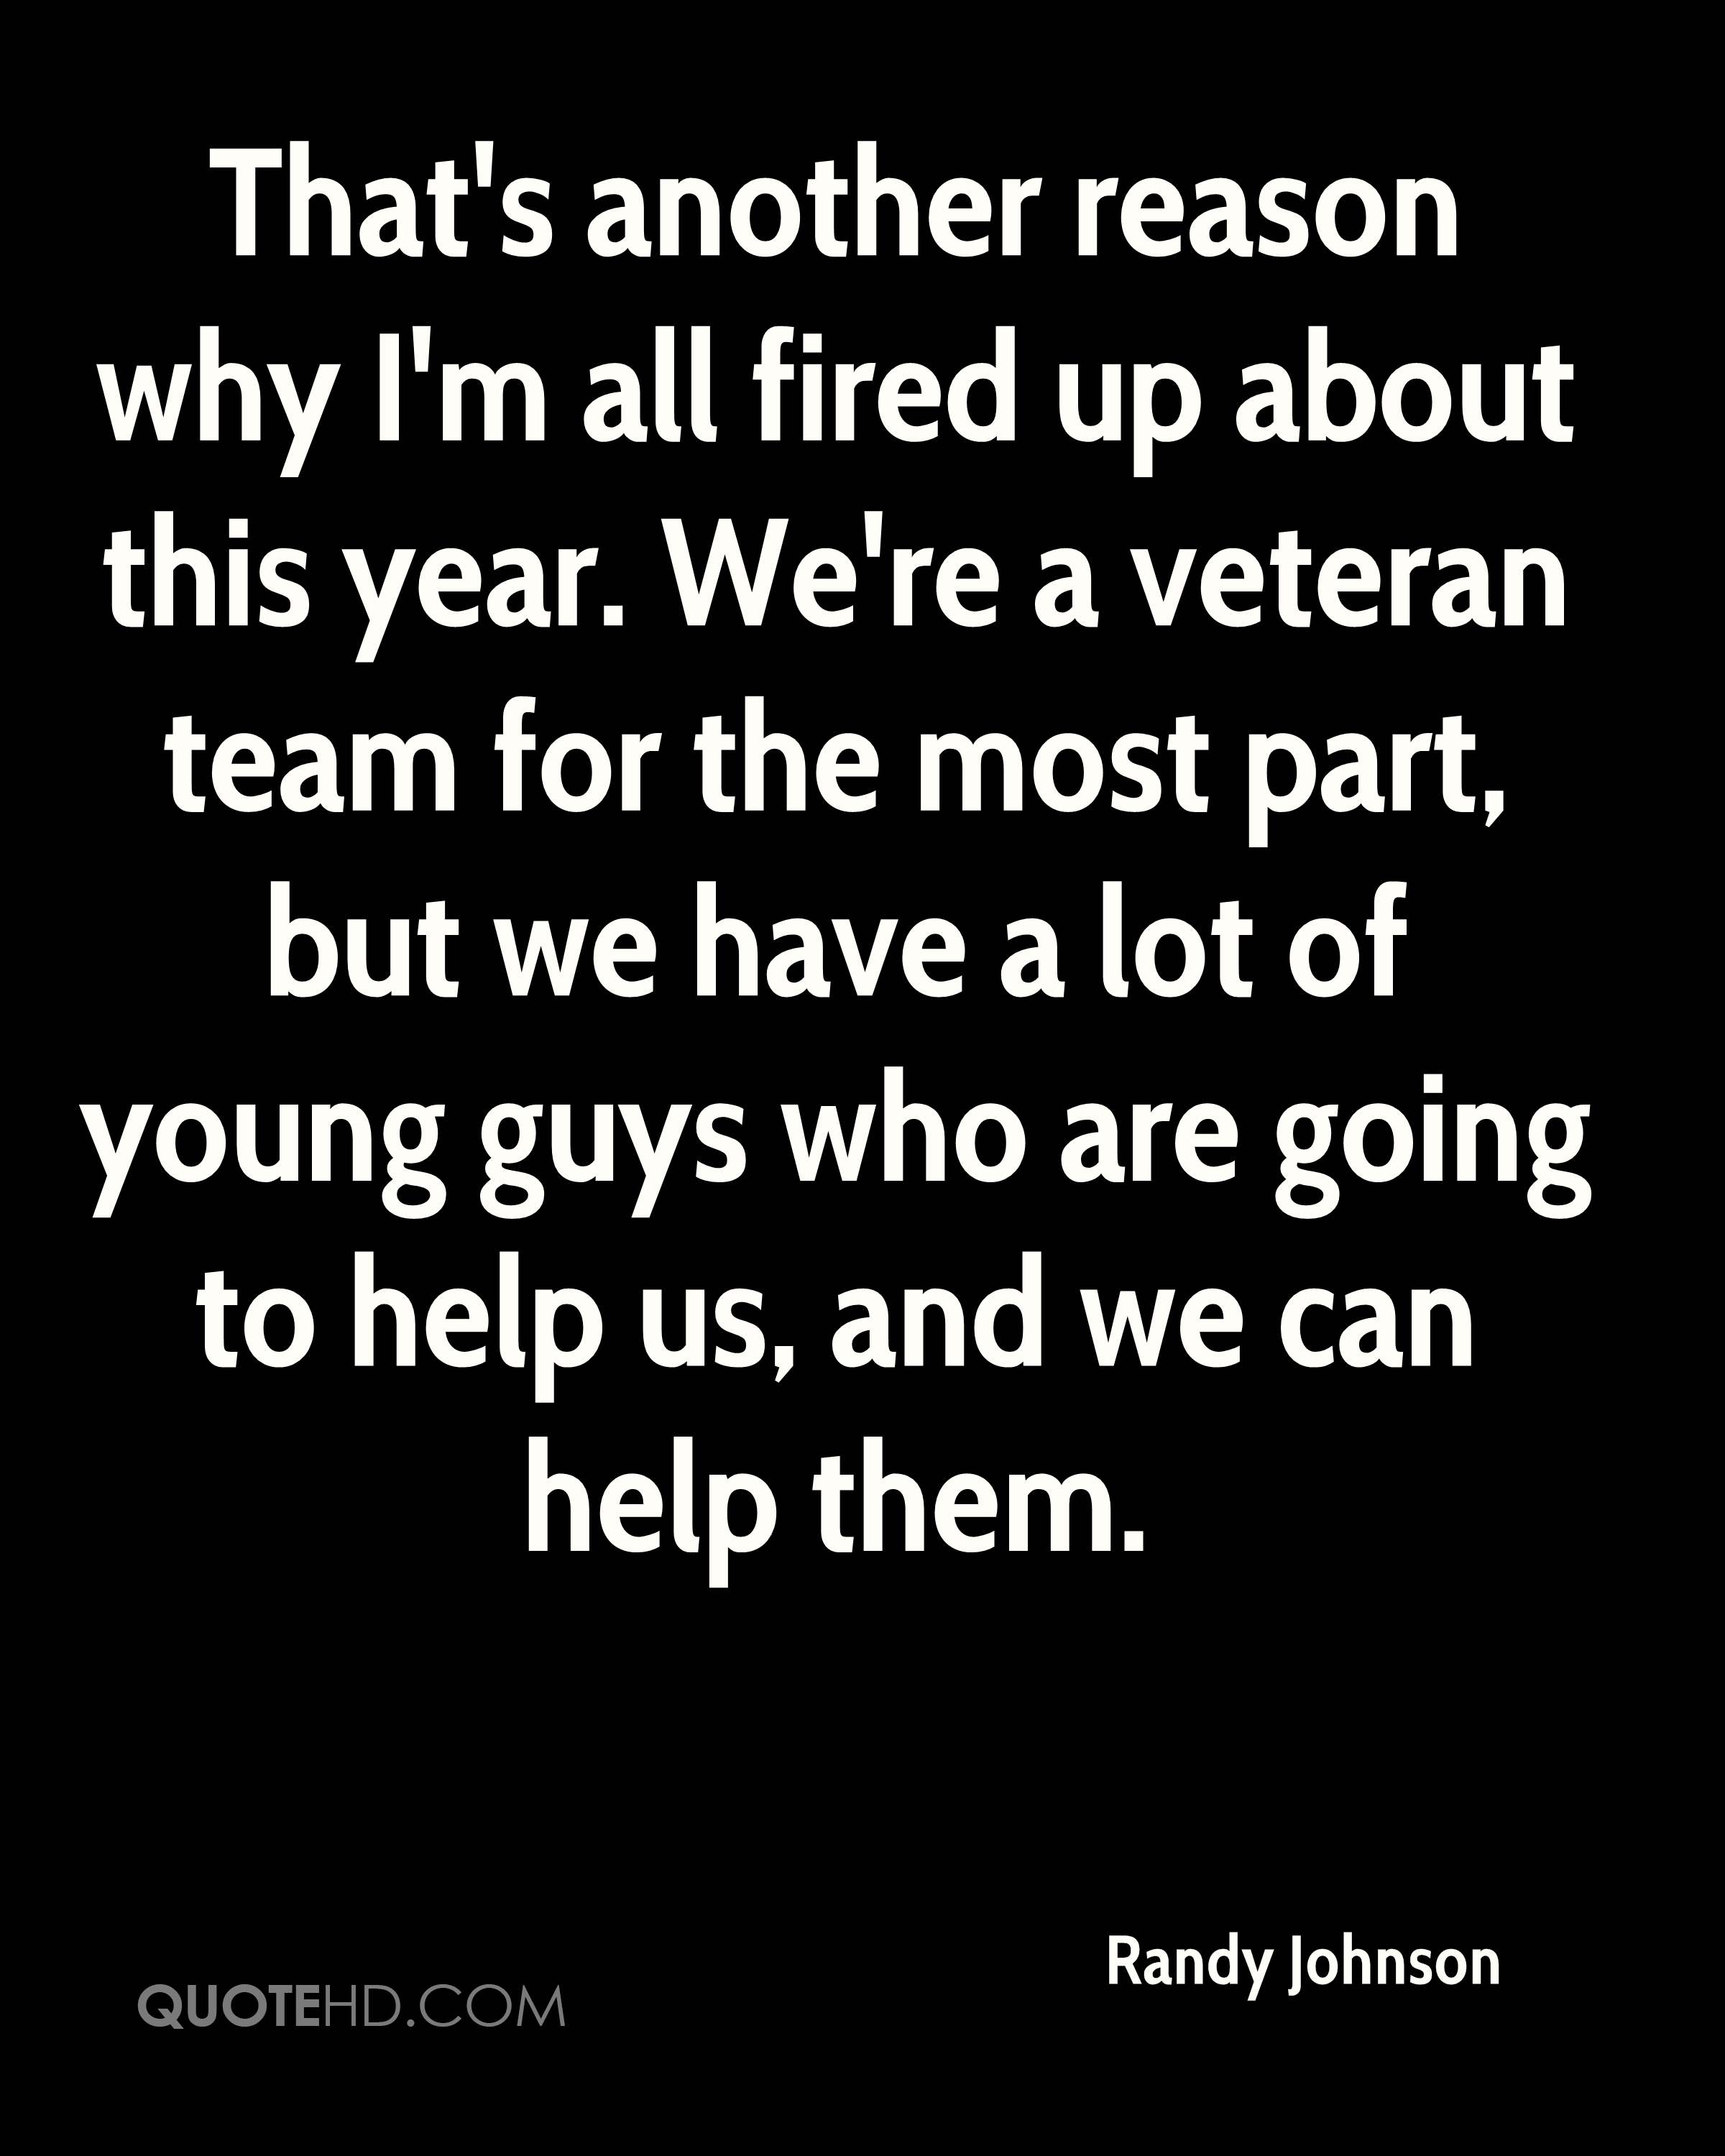 That's another reason why I'm all fired up about this year. We're a veteran team for the most part, but we have a lot of young guys who are going to help us, and we can help them.